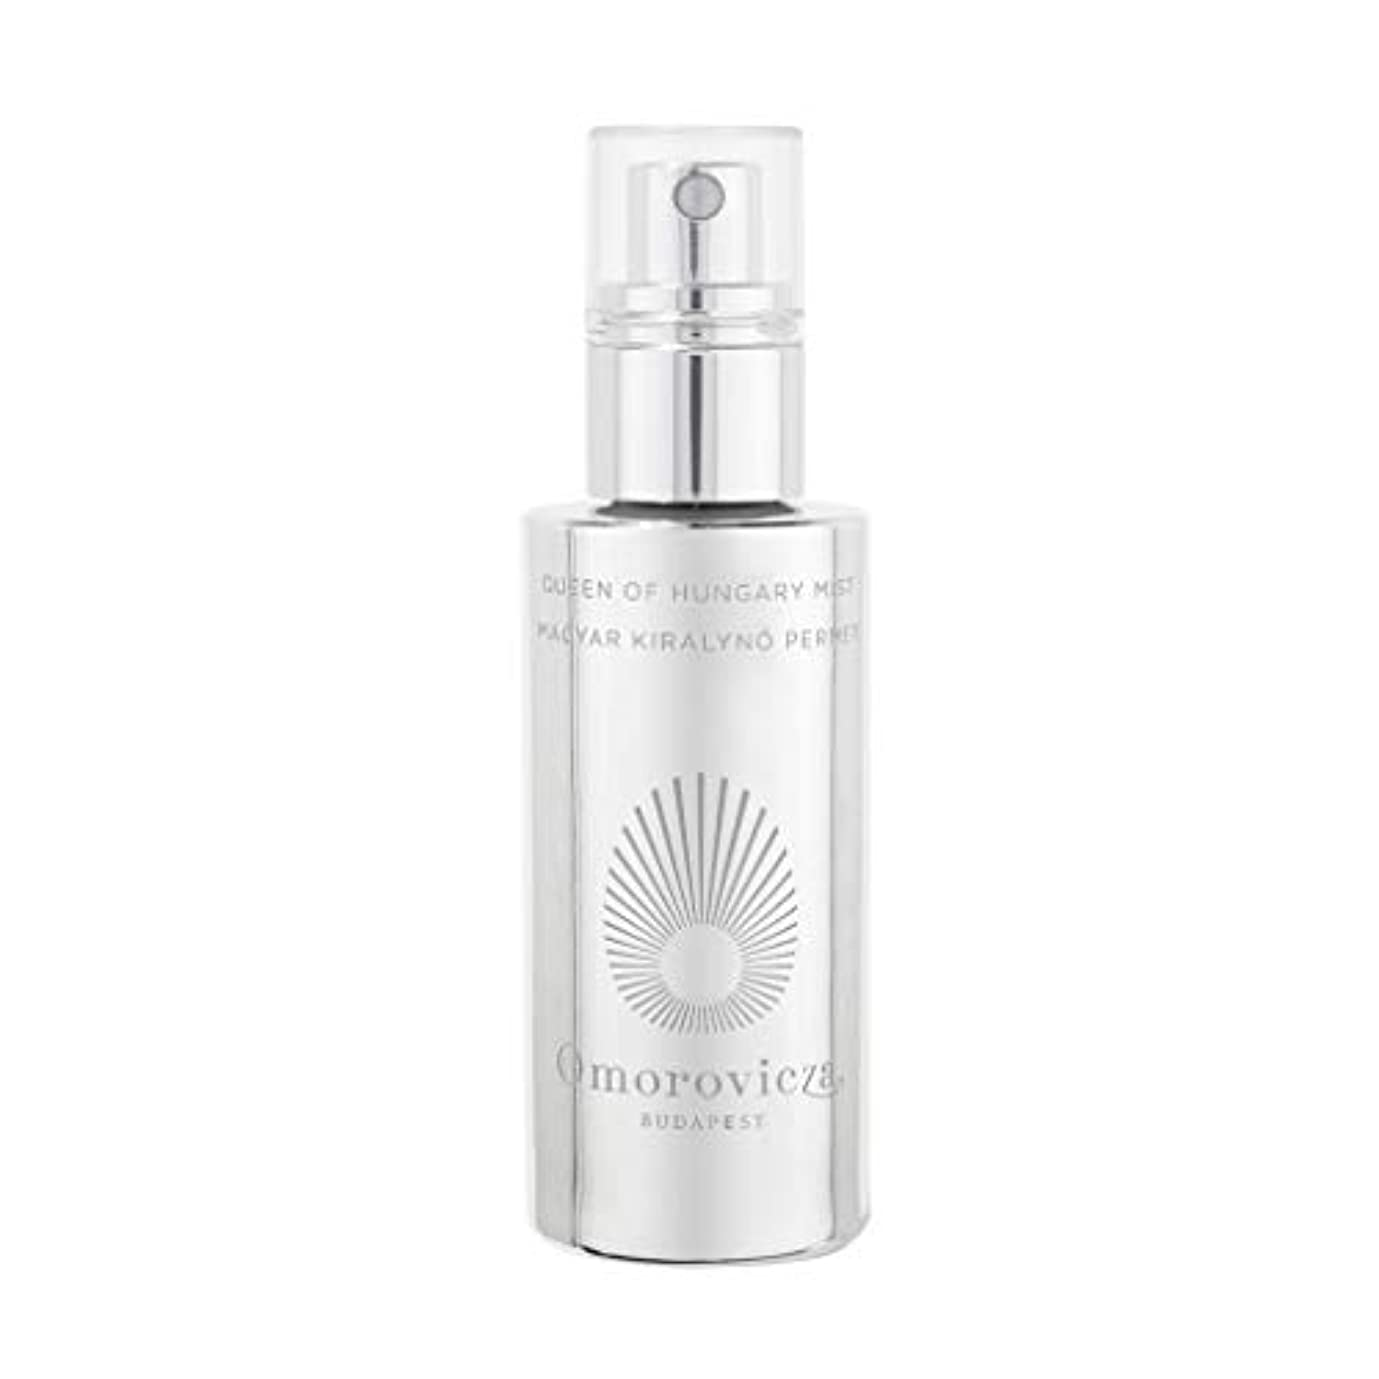 下線顎無視OMOROVICZA オモロヴィッツァ Budapest Queen of Hungary mist silver 30ml